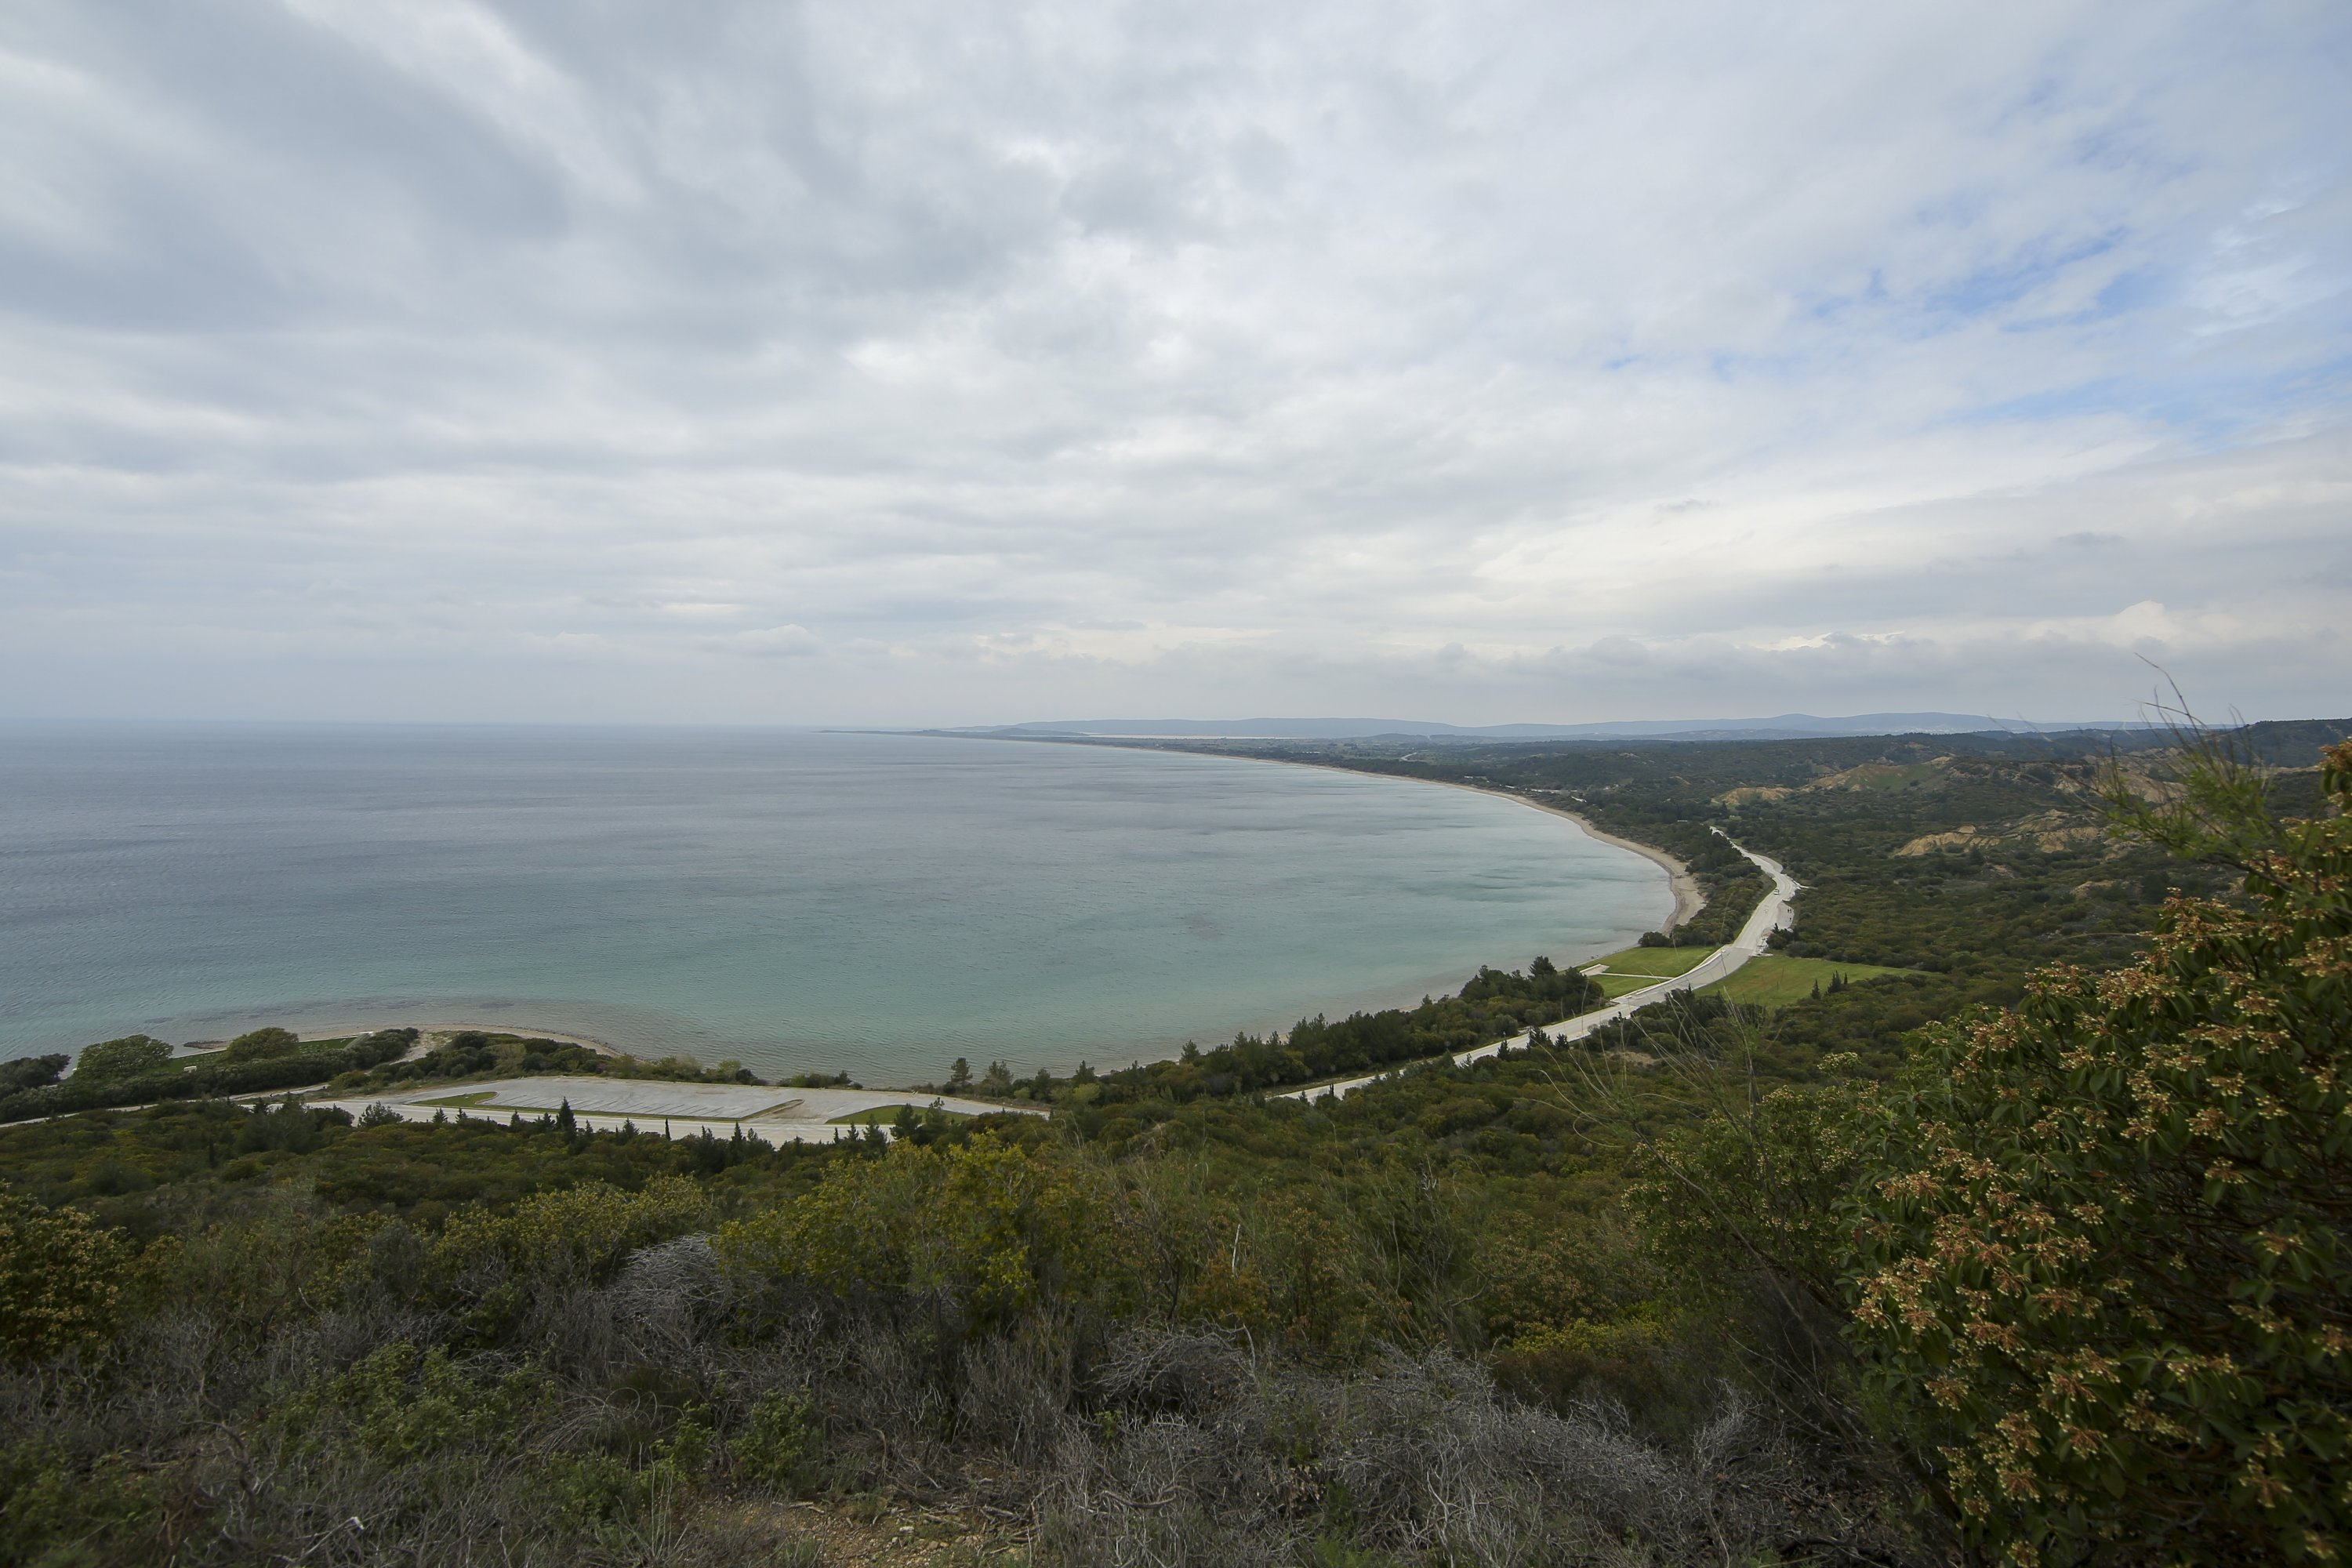 A view of Anzac Cove, site of the World War I landing of the Australian and New Zealand Army Corps (Anzacs) a day ahead of the 106th anniversary of the Gallipoli Campaign in Çanakkale, Turkey, April 24, 2021. (AP Photo)